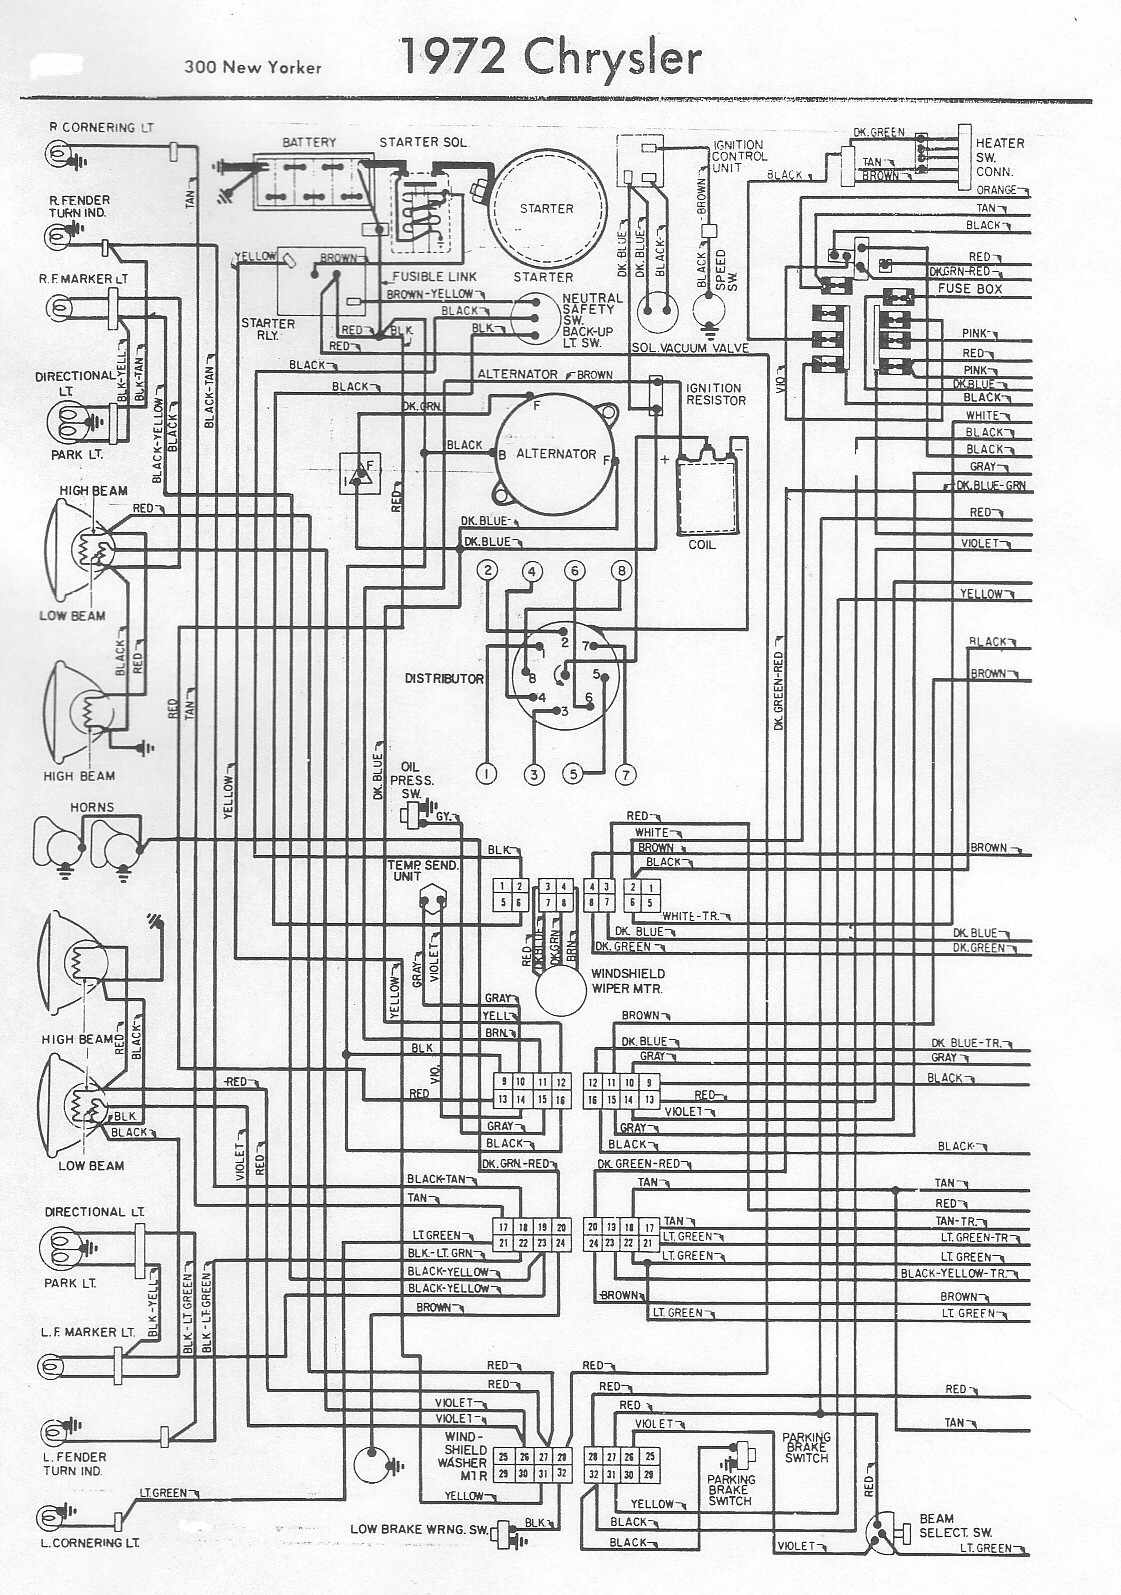 chrysler concorde wiring diagrams 1955 dodge wiring 1995 chrysler concorde wiring diagram 1997 chrysler concorde wiring diagram [ 1121 x 1595 Pixel ]